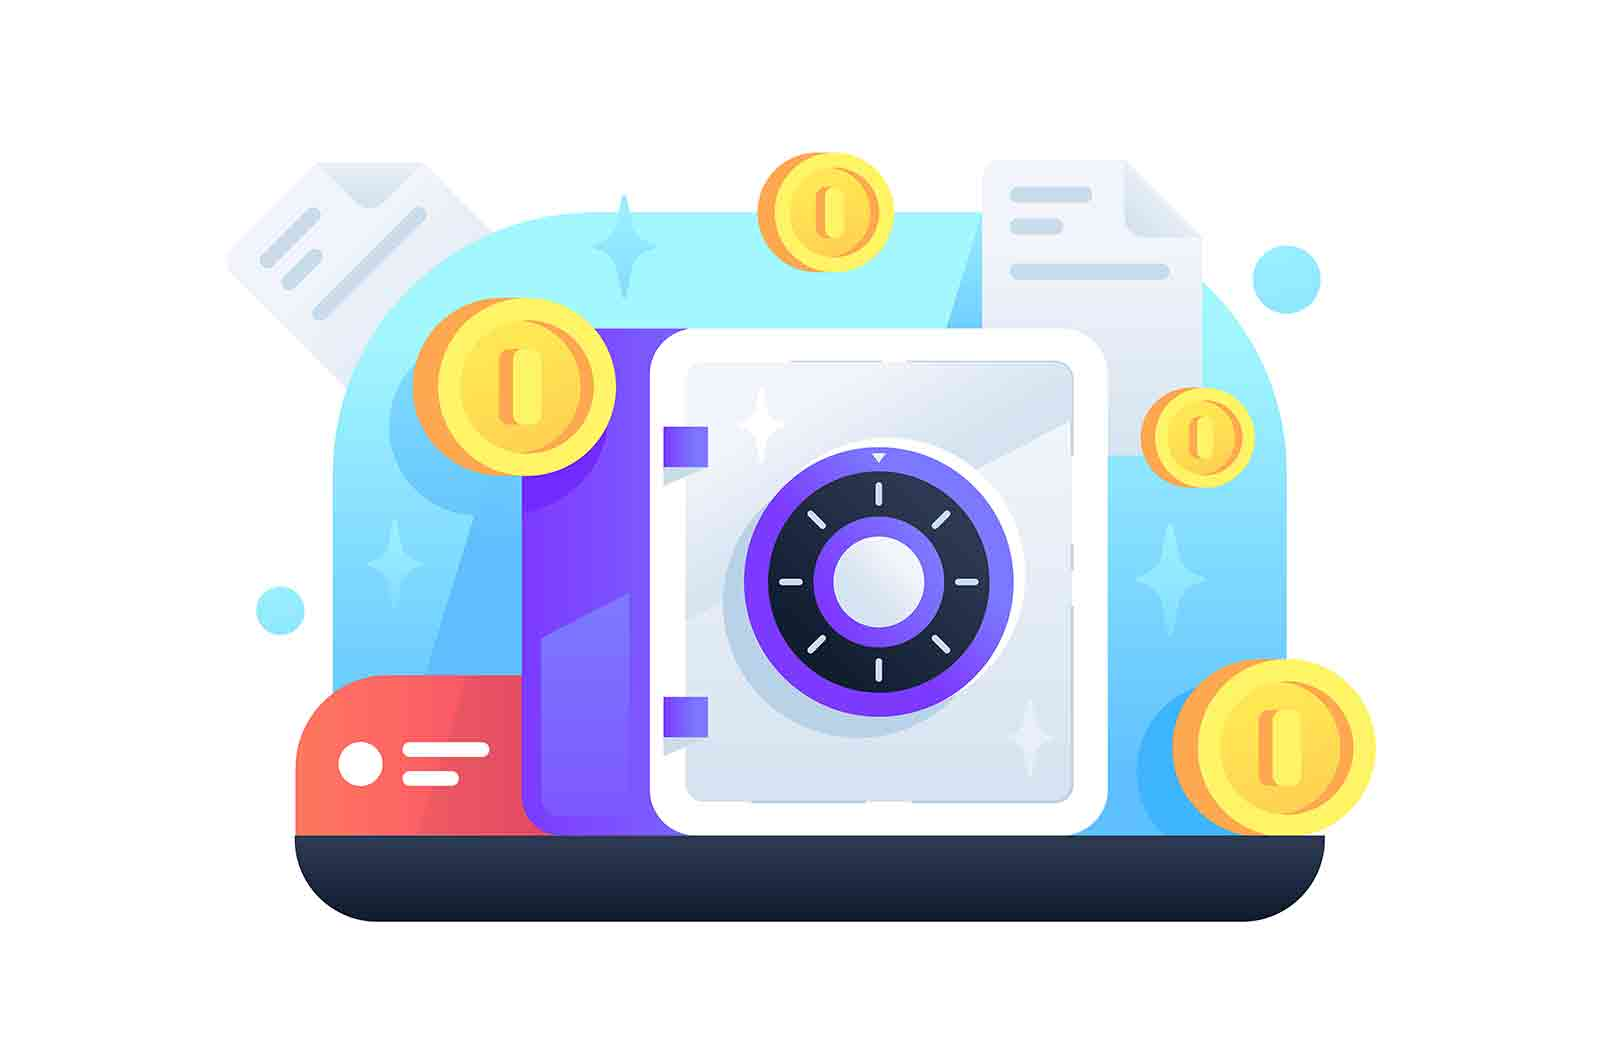 Safe with golden coins, lock for money security. Isolated illustration concept of cash protection technology.